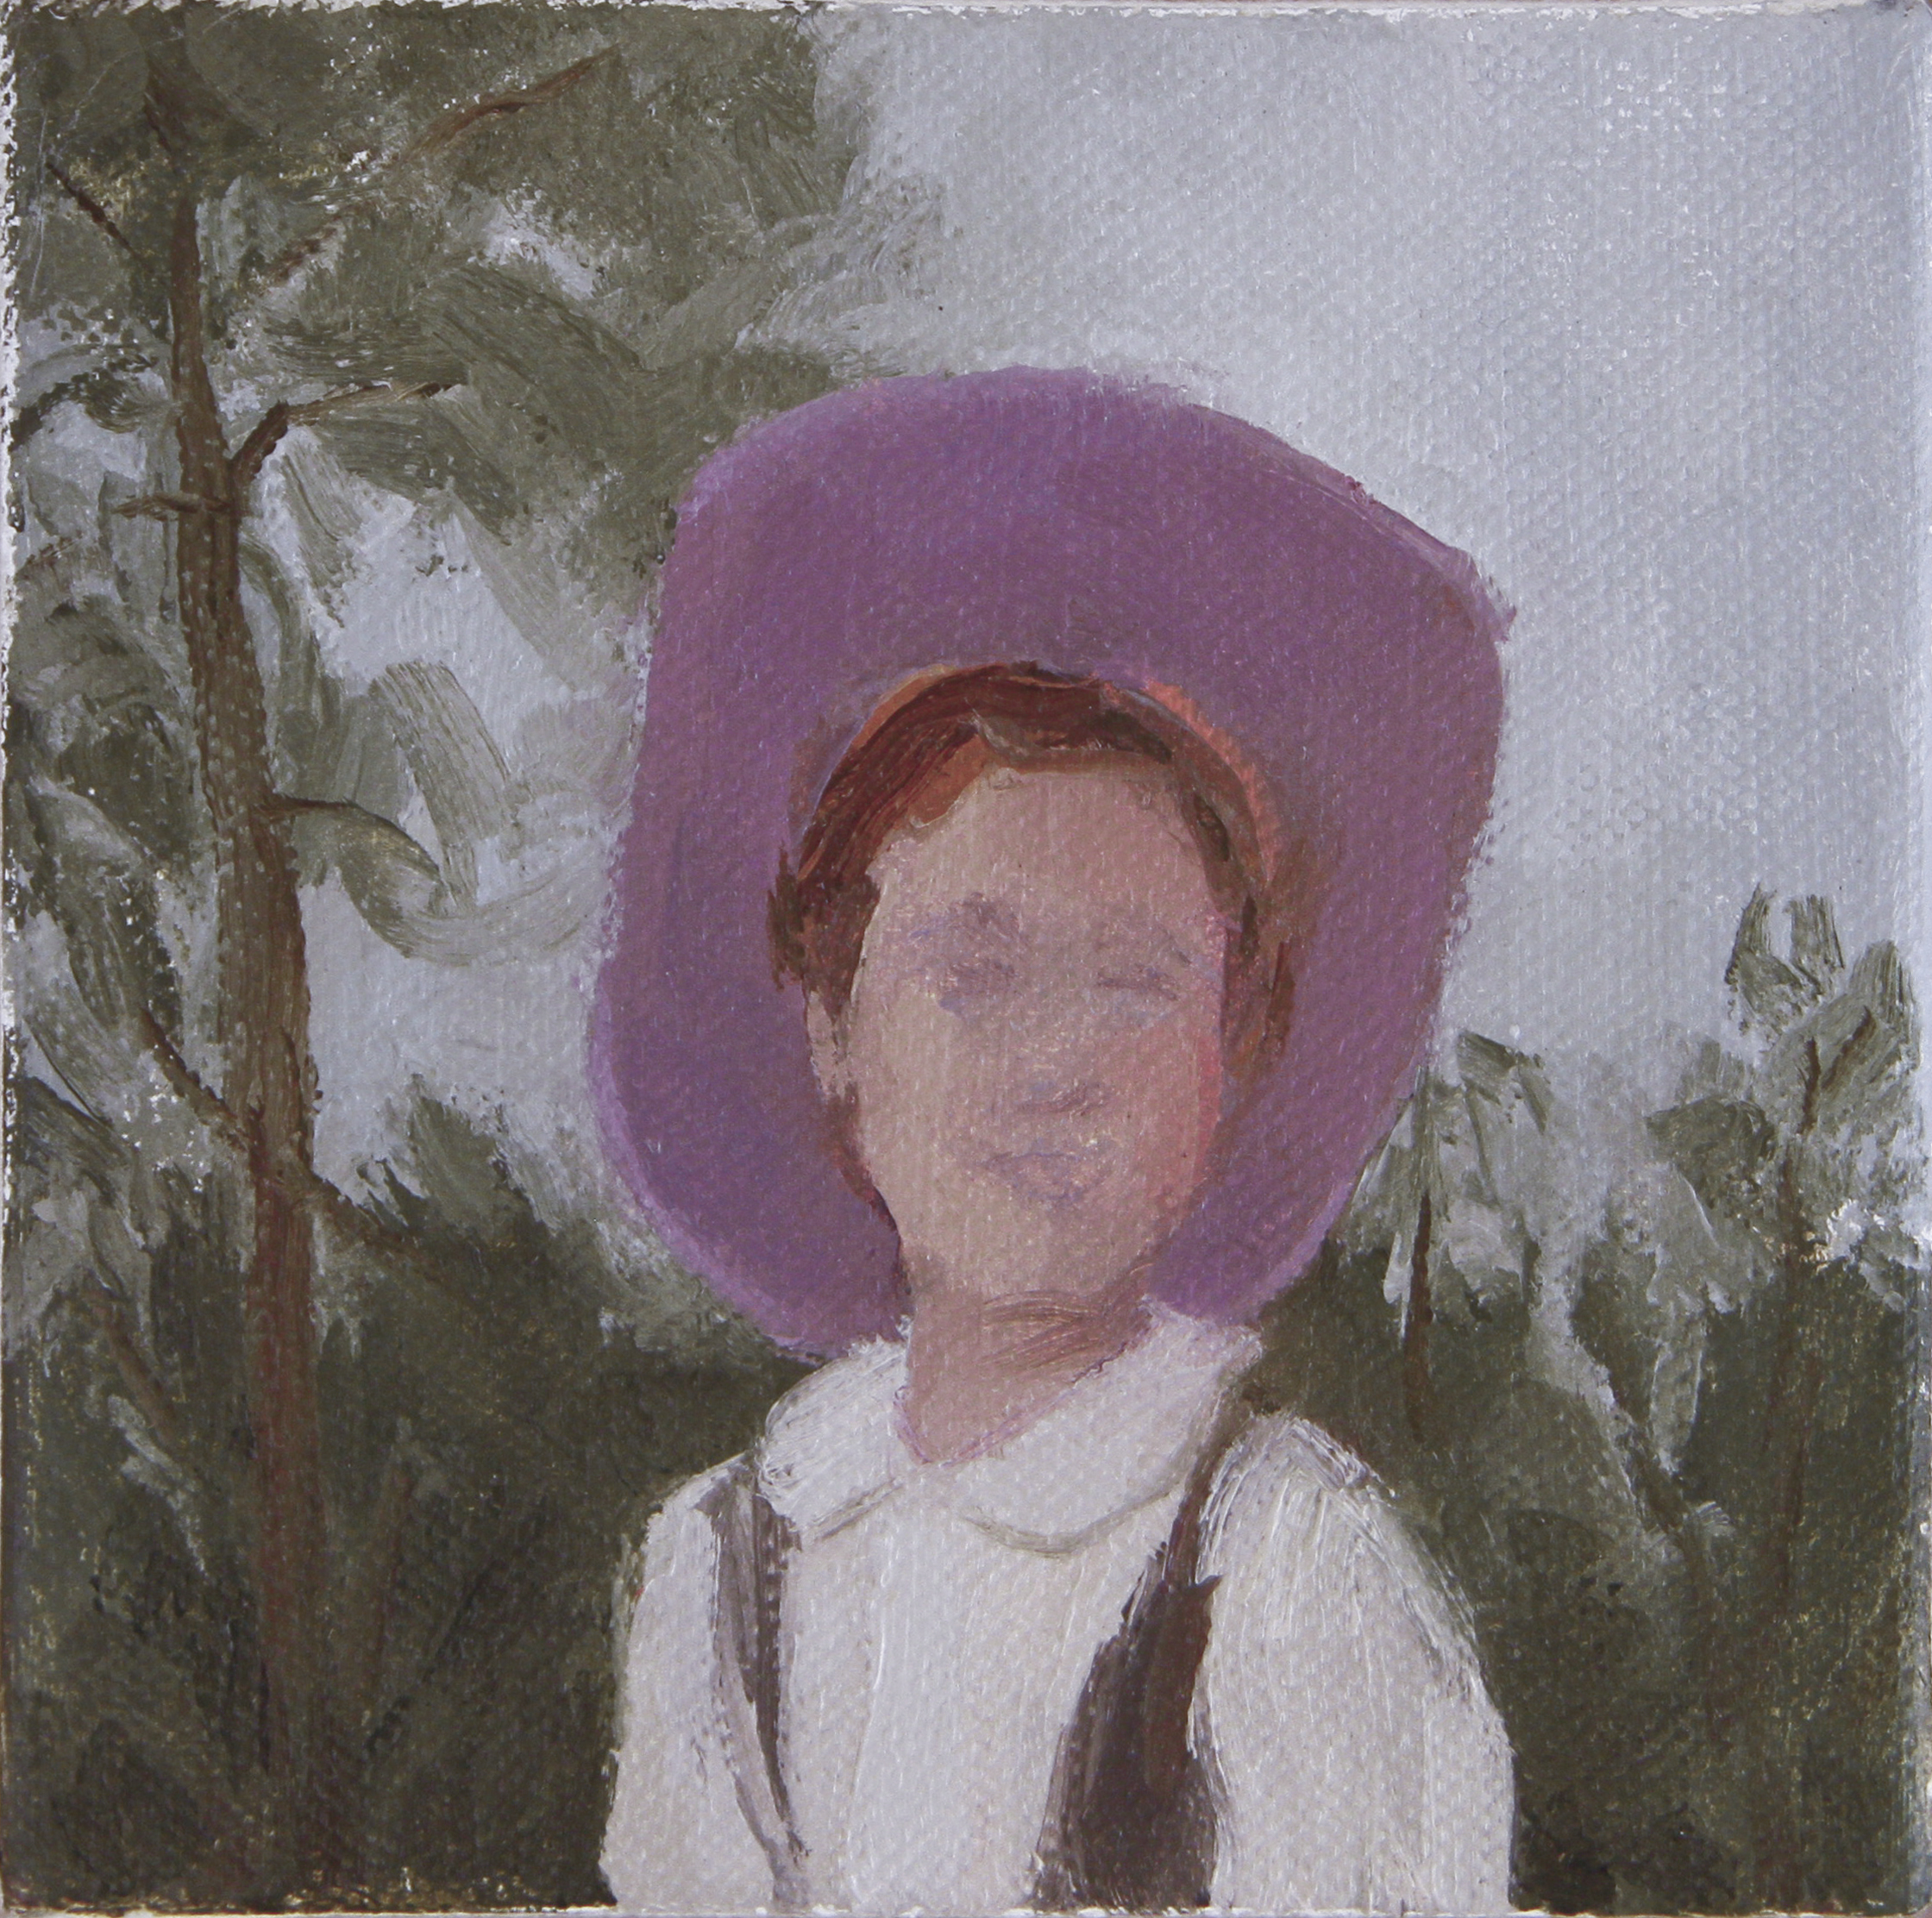 "rodeo girl  oil on canvas 5x5"" 2014  stolen in Nashville, TN"